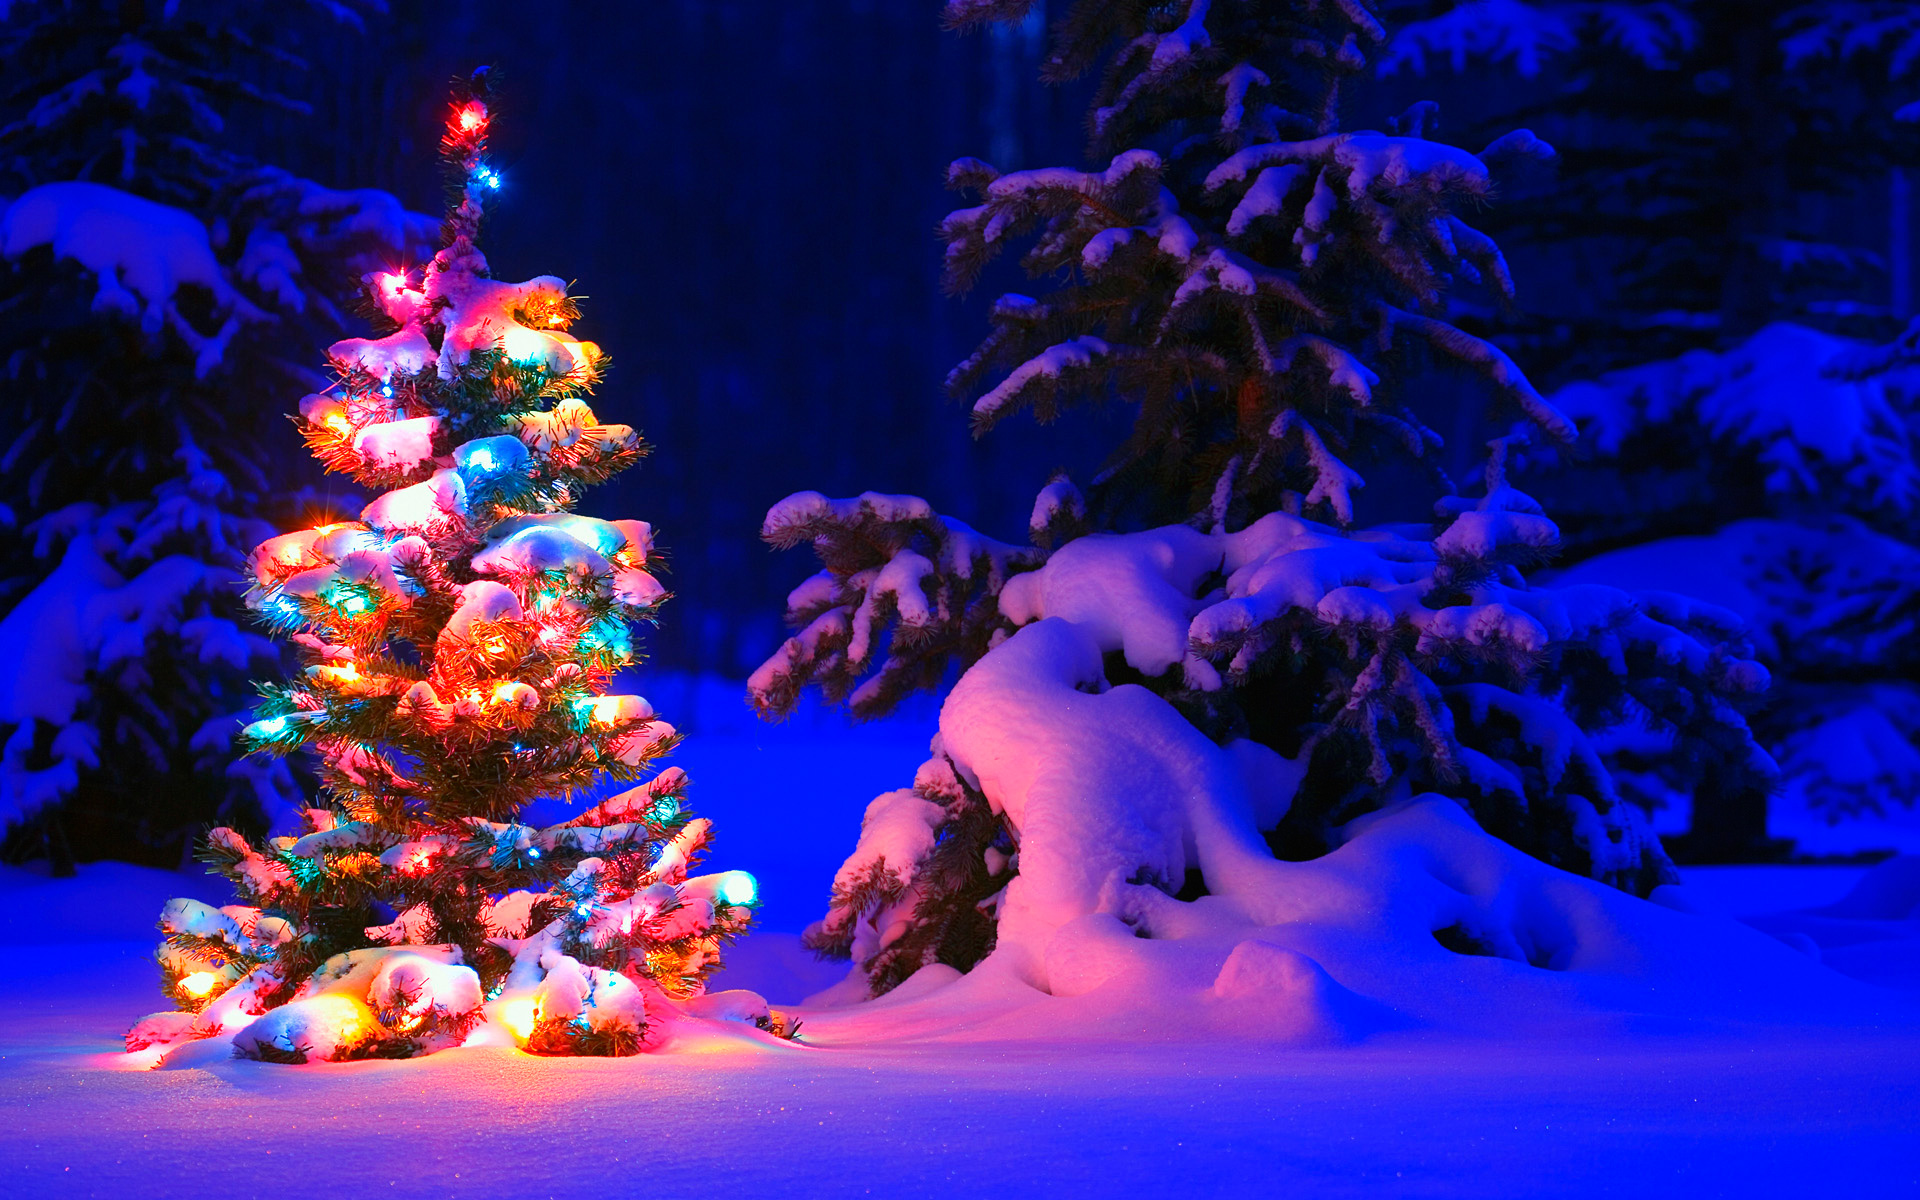 Wallpaper Of Christmas